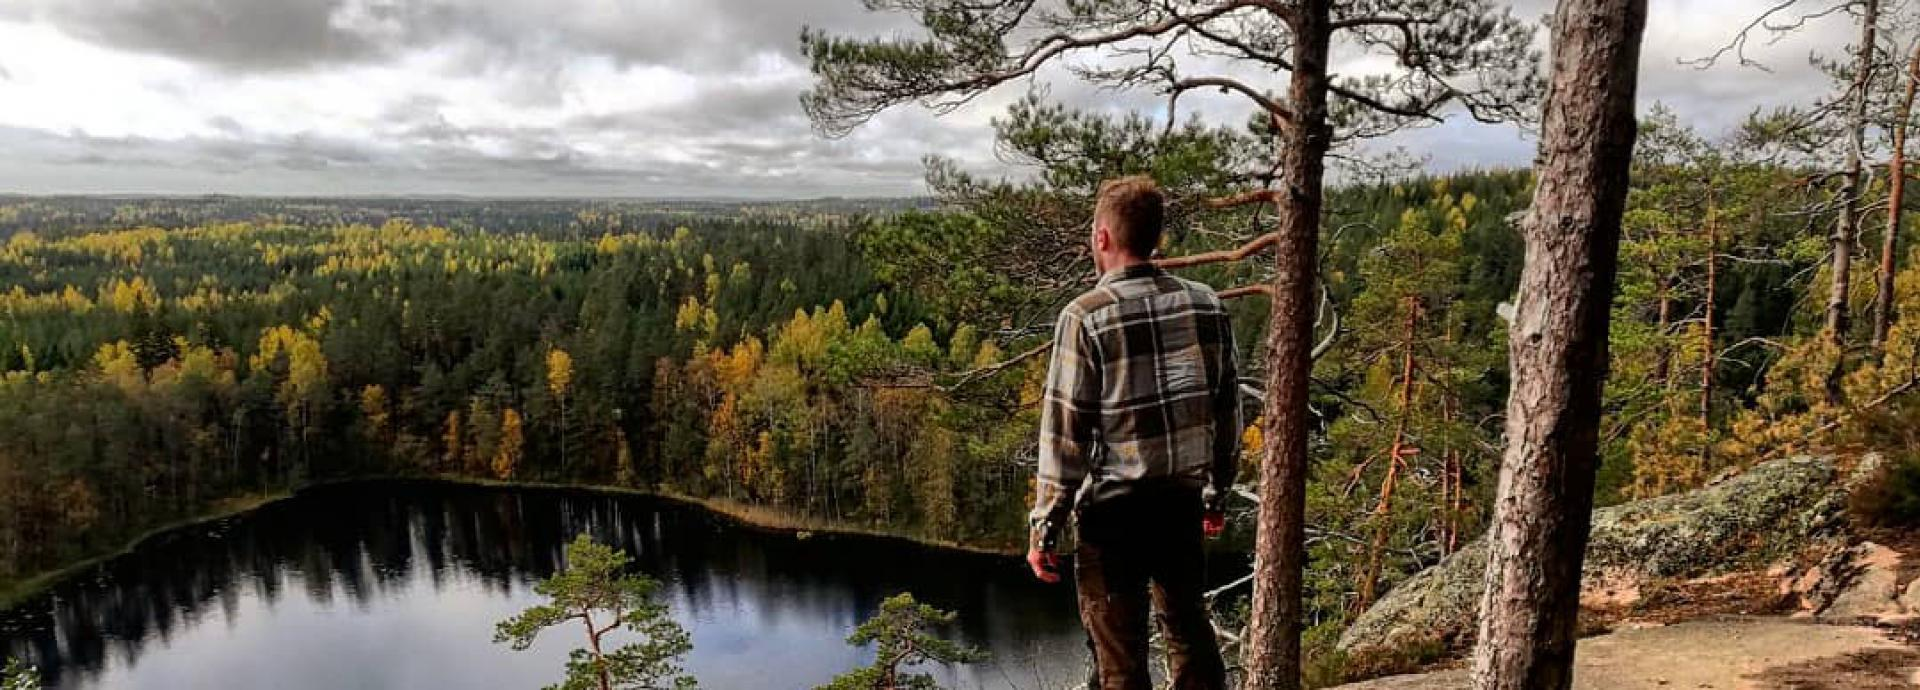 U.S. Fulbright Student Andrew House in the Finnish forest